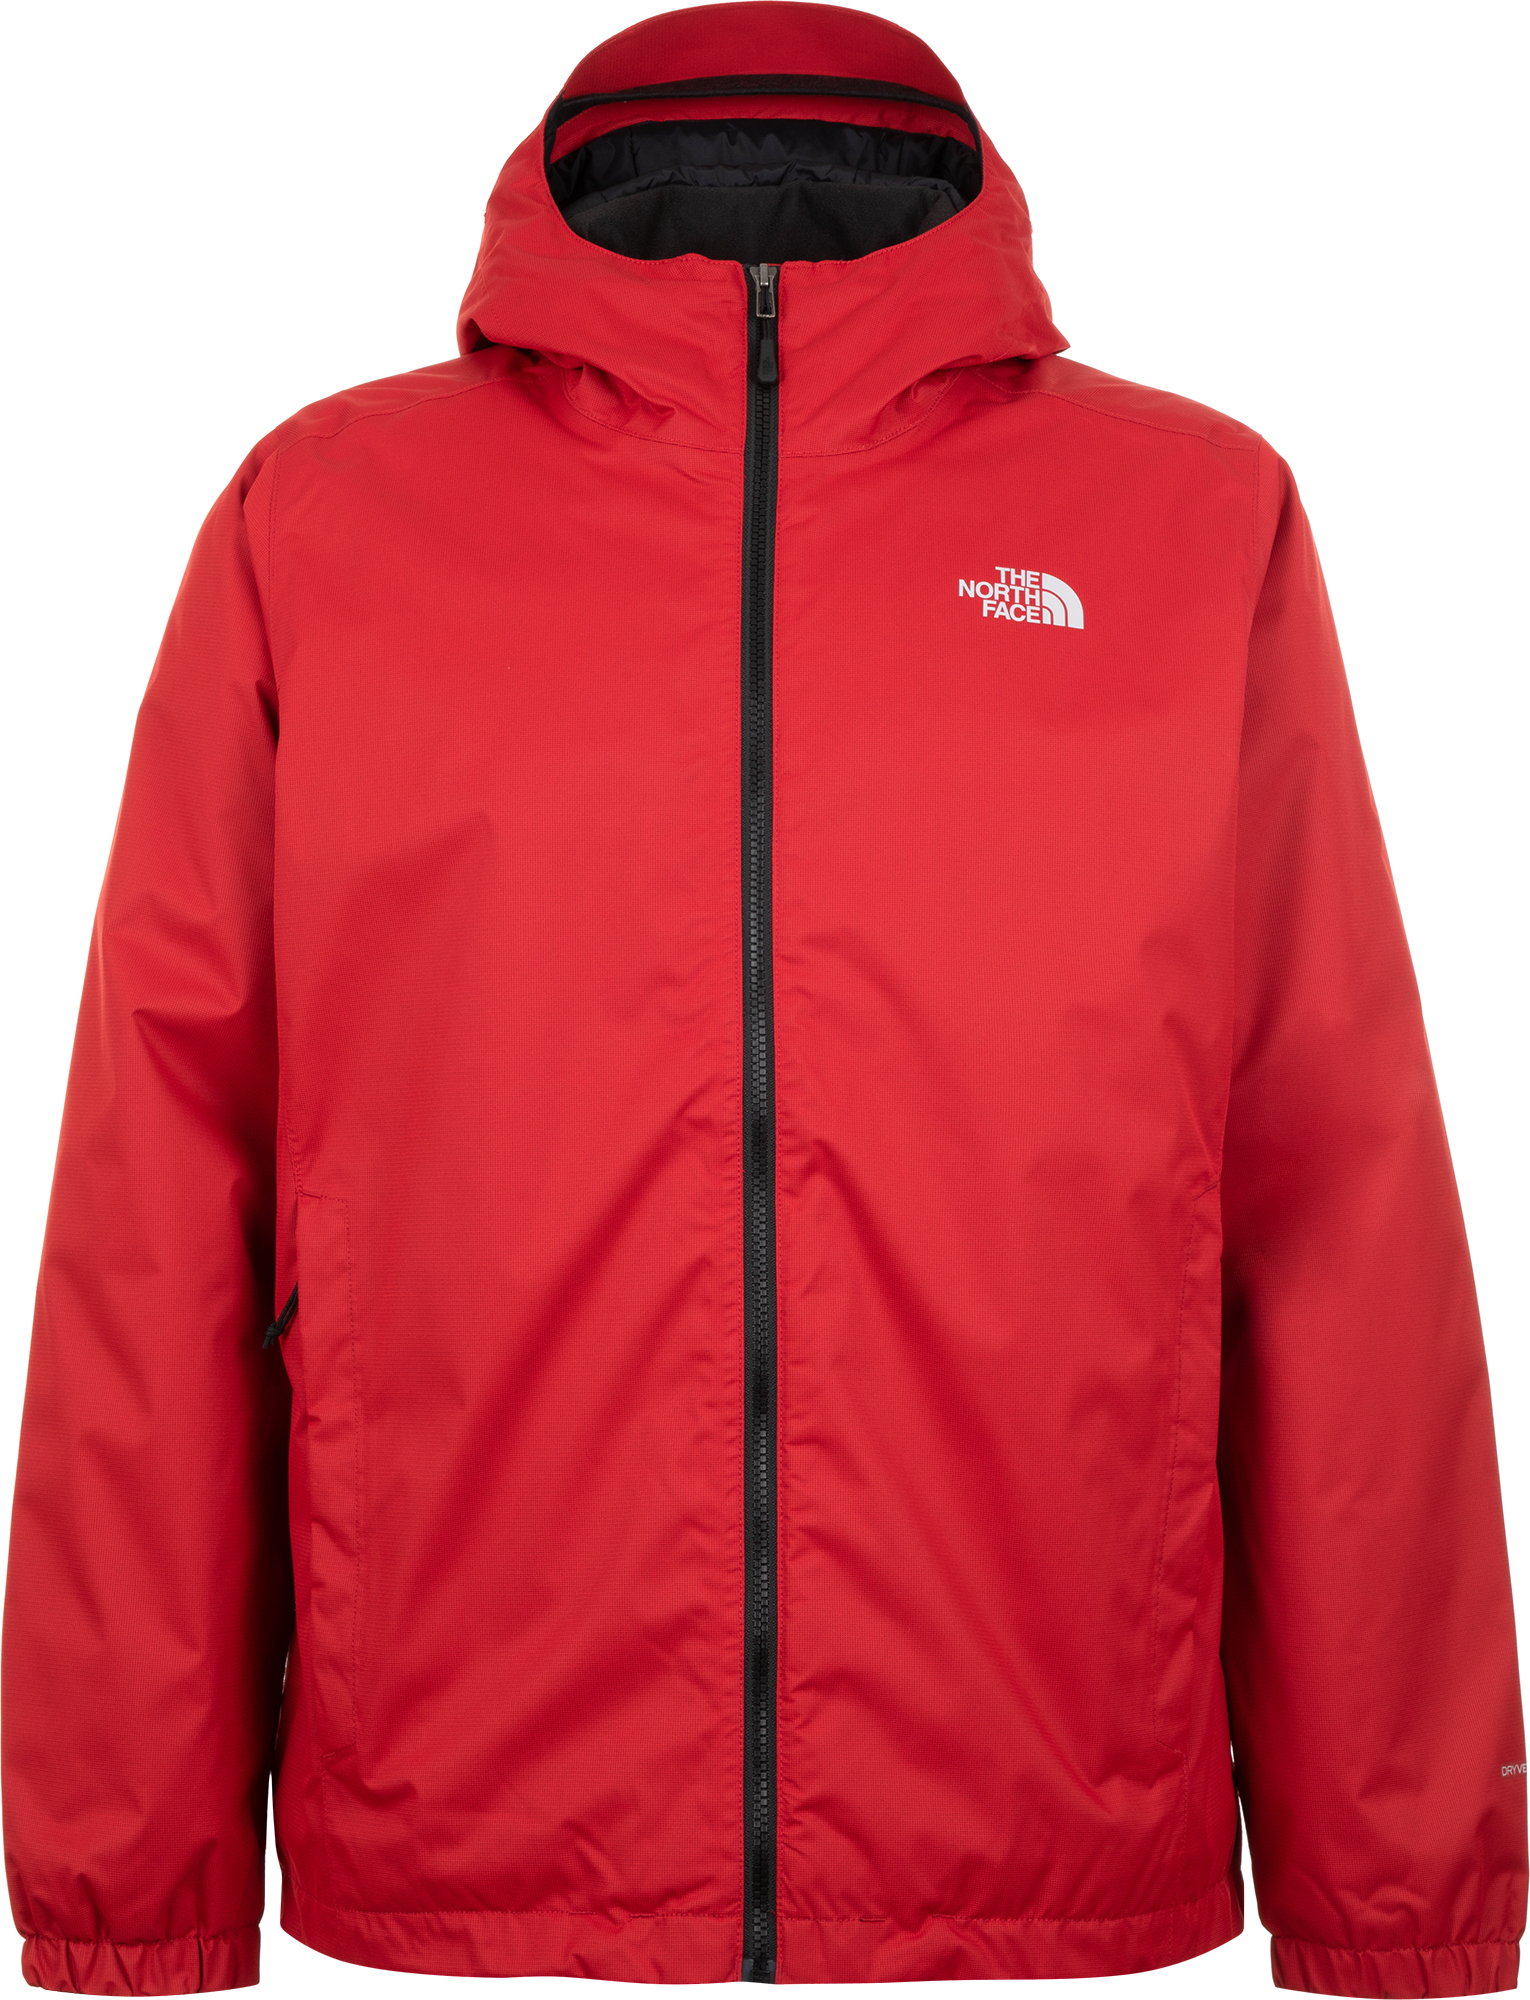 The North Face Куртка утепленная мужская The North Face Quest Insulated, размер 50 цены